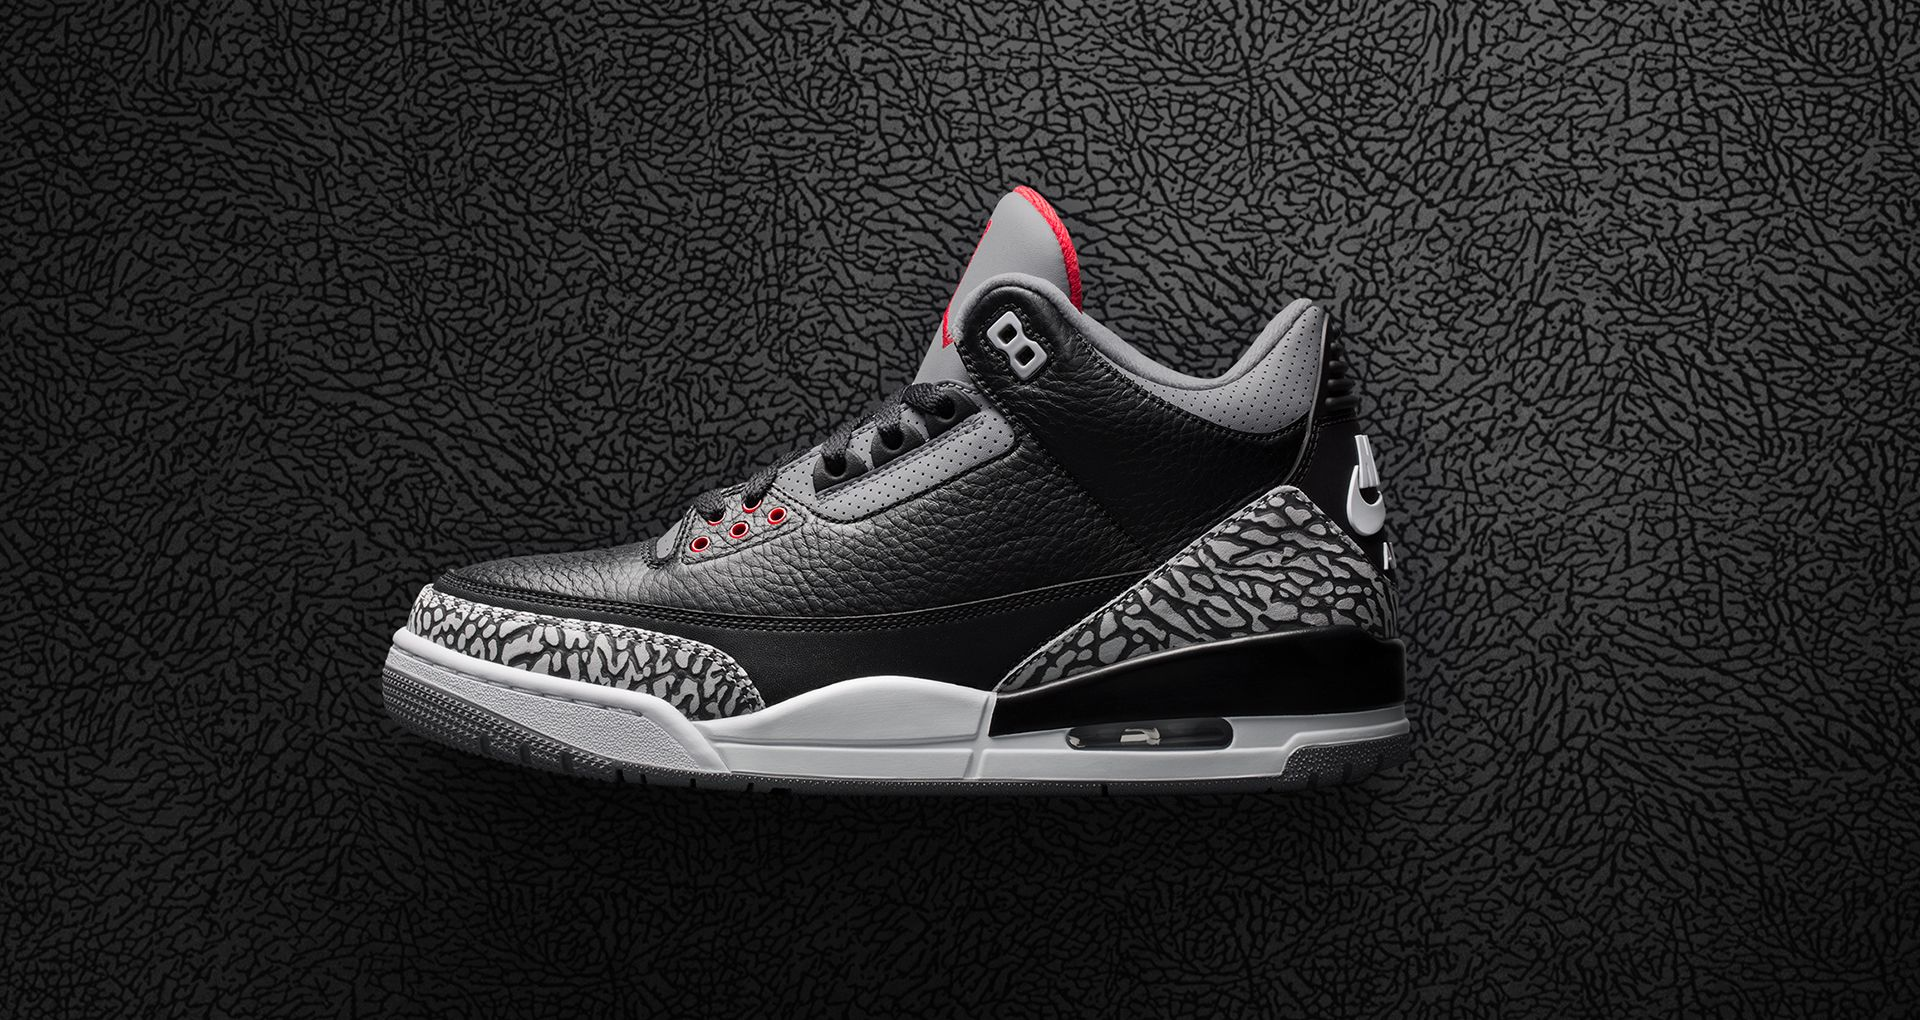 super popular b0f20 97edf Air Jordan 3 Retro OG  Black Cement  2018 Release Date